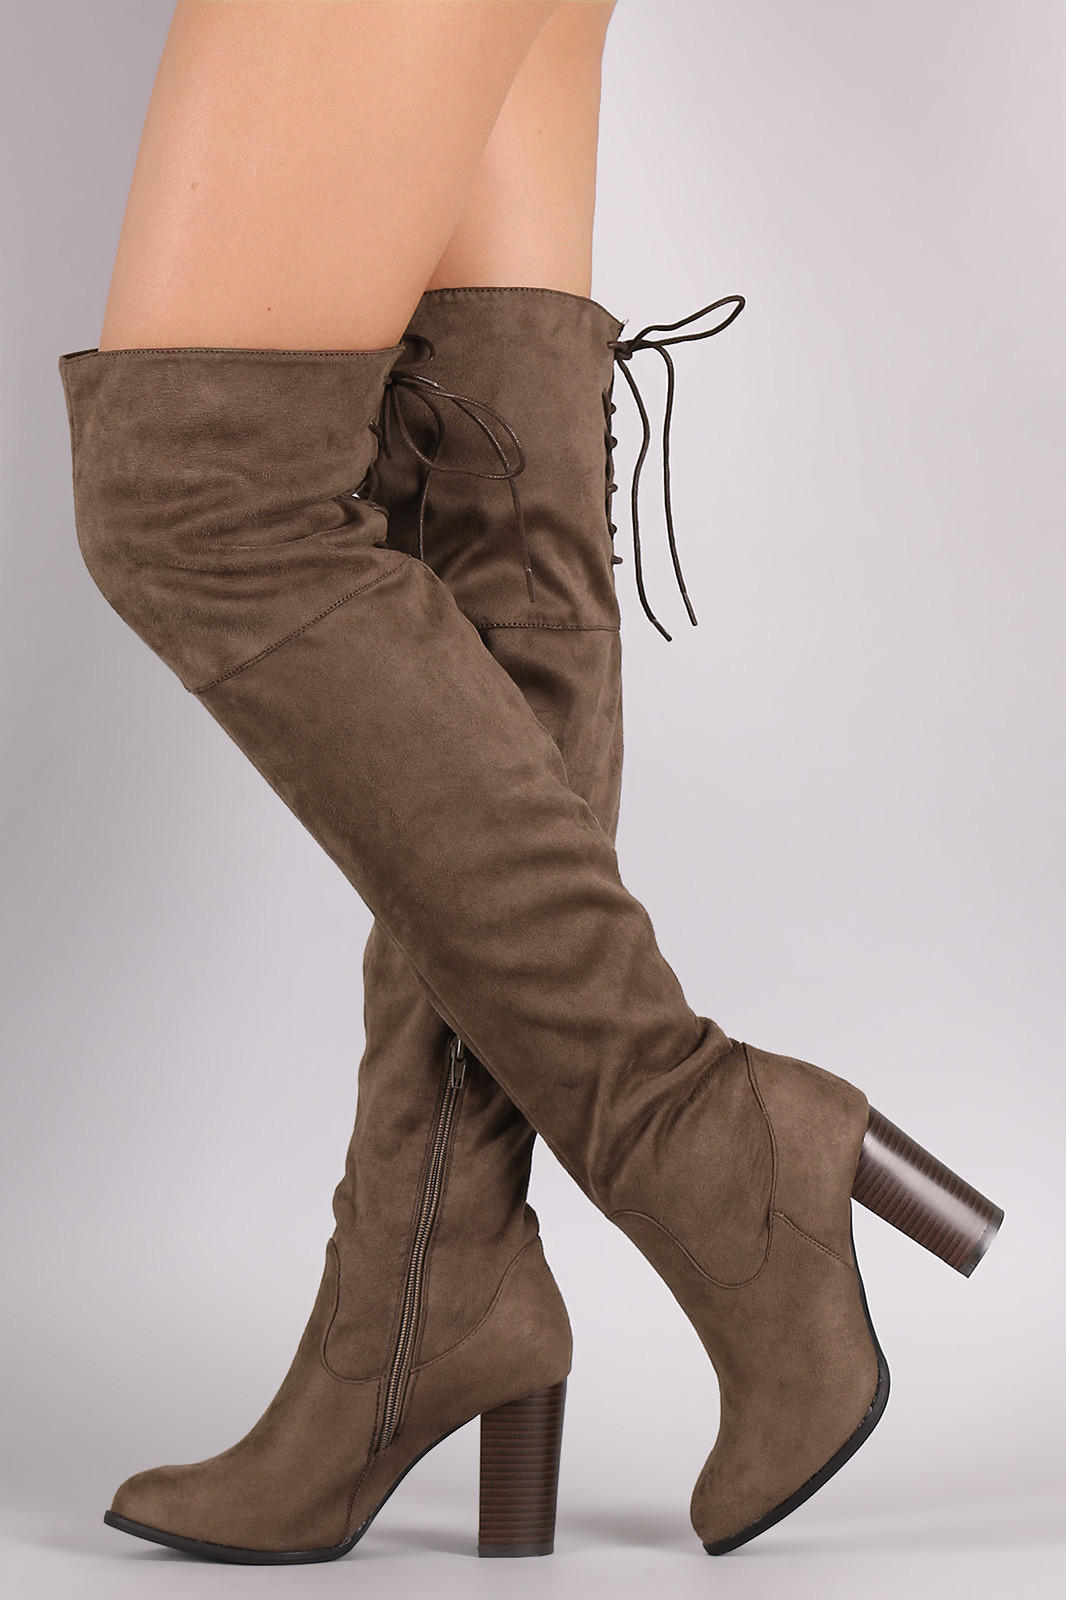 8231dc3e6d5 Qupid Suede Back Lace-Up Chunky Heeled from LoveStruck Boutique